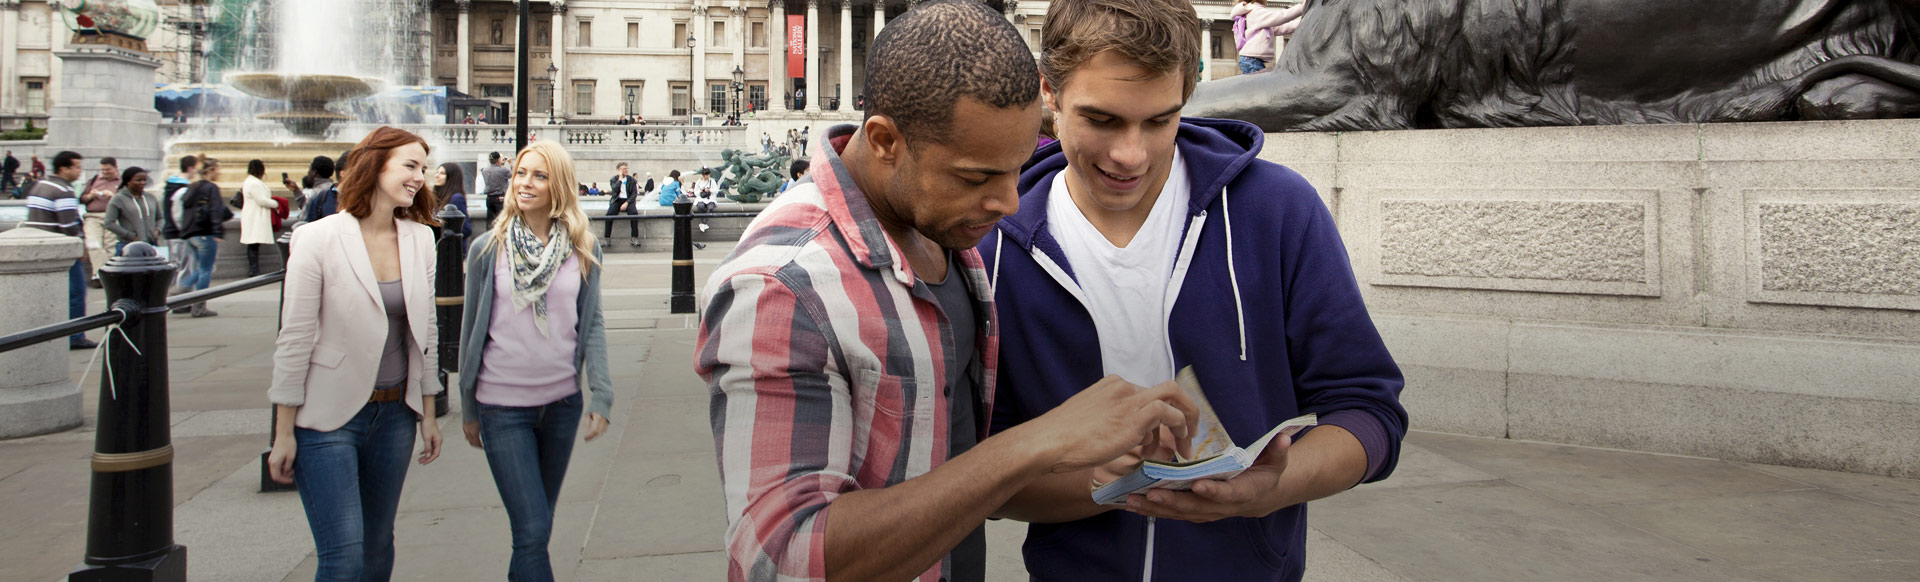 Two men looking at a guidebook in Trafalgar Square. © London and Partners/Pawel Libera